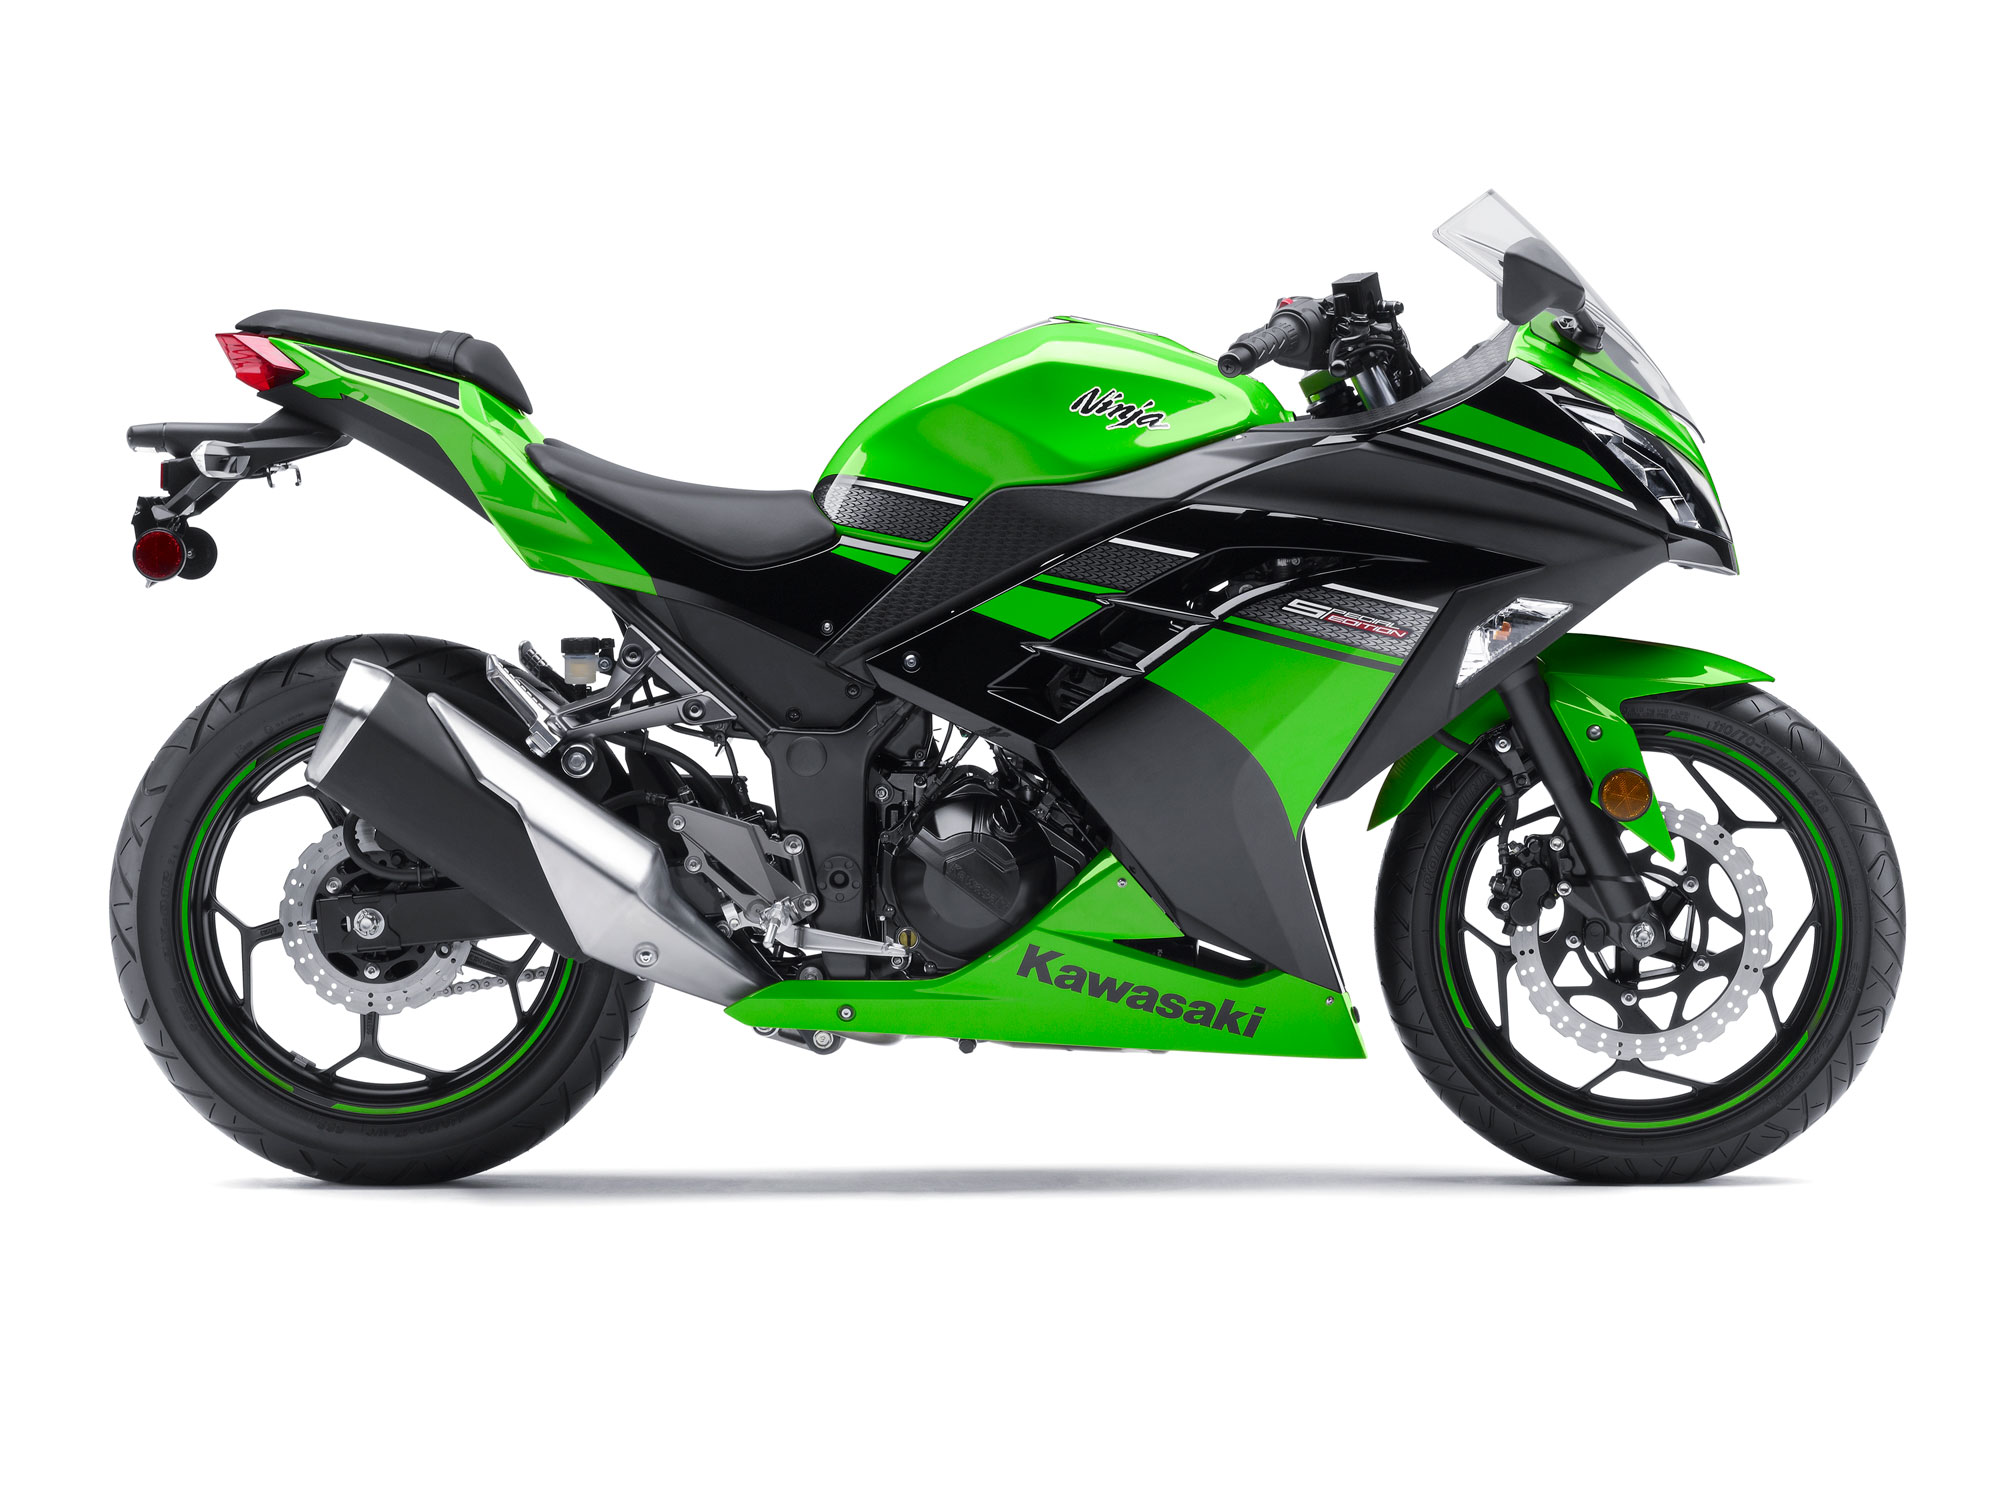 2015 Kawasaki Ninja 300 On 2013 Zx10r Wiring Diagram Zx10 Special Edition Abs Review Rh Totalmotorcycle Com